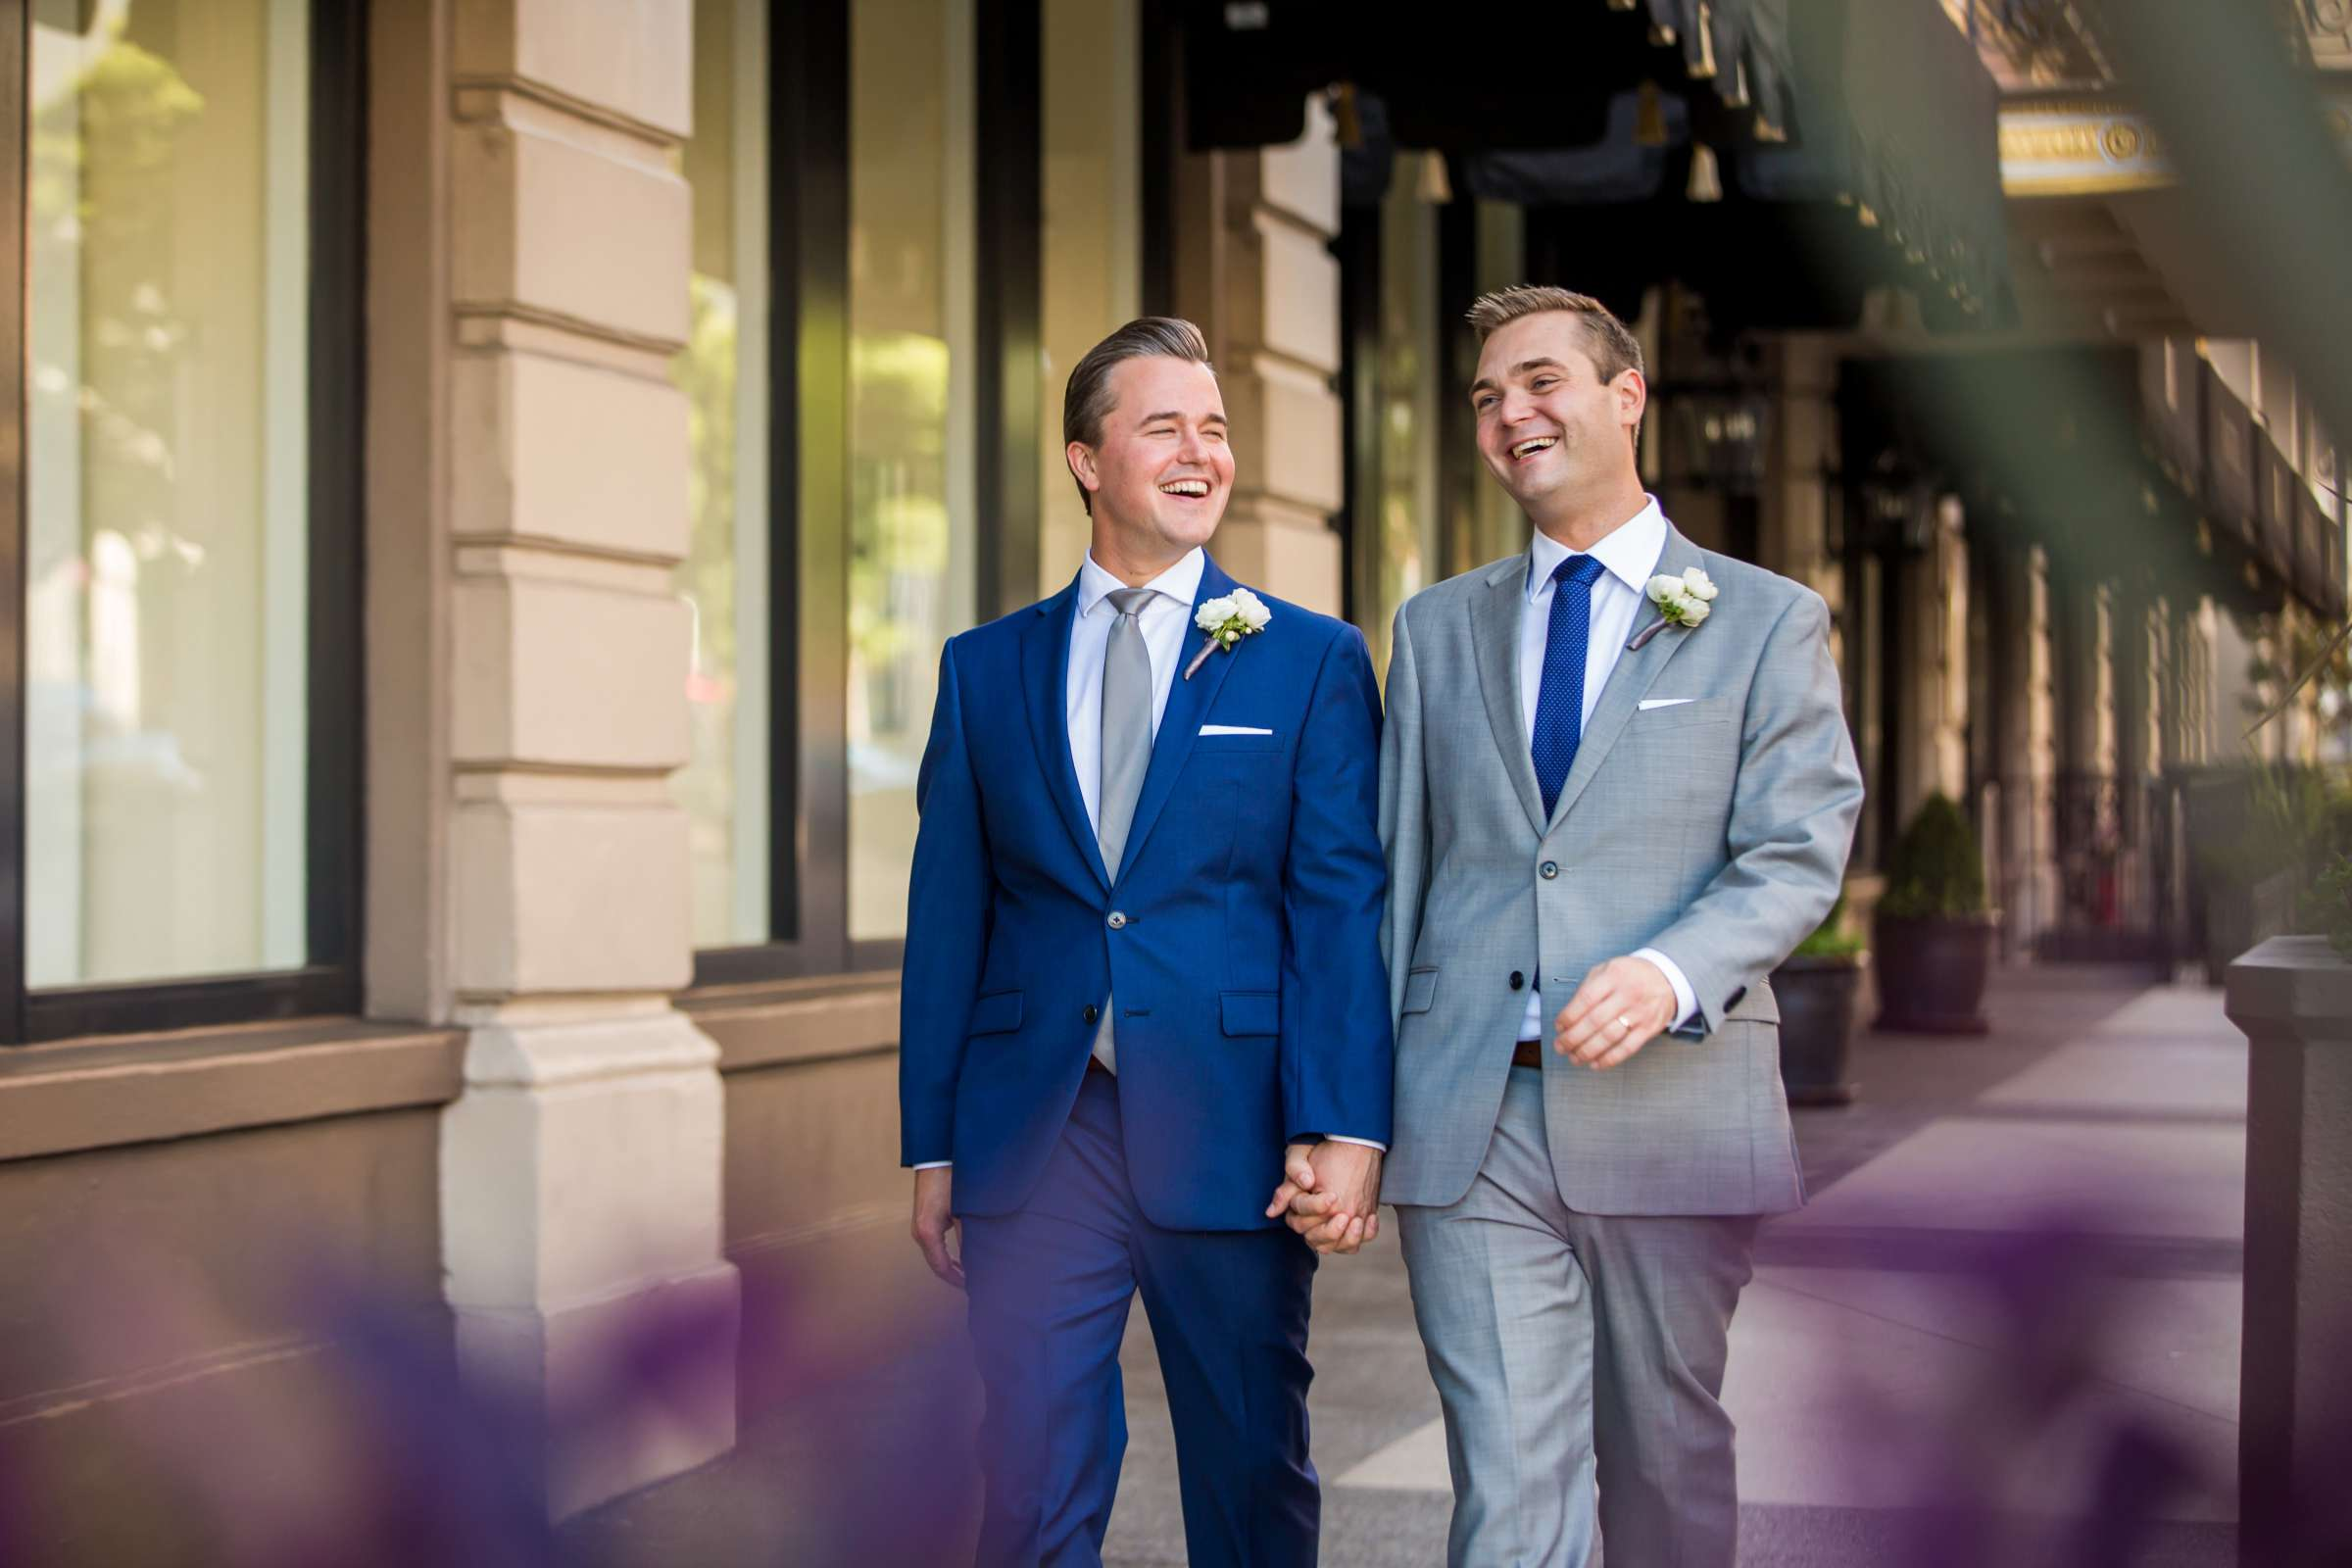 Candid moment at San Diego Courthouse Wedding coordinated by Emily Smiley, Eric and James Wedding Photo #377317 by True Photography